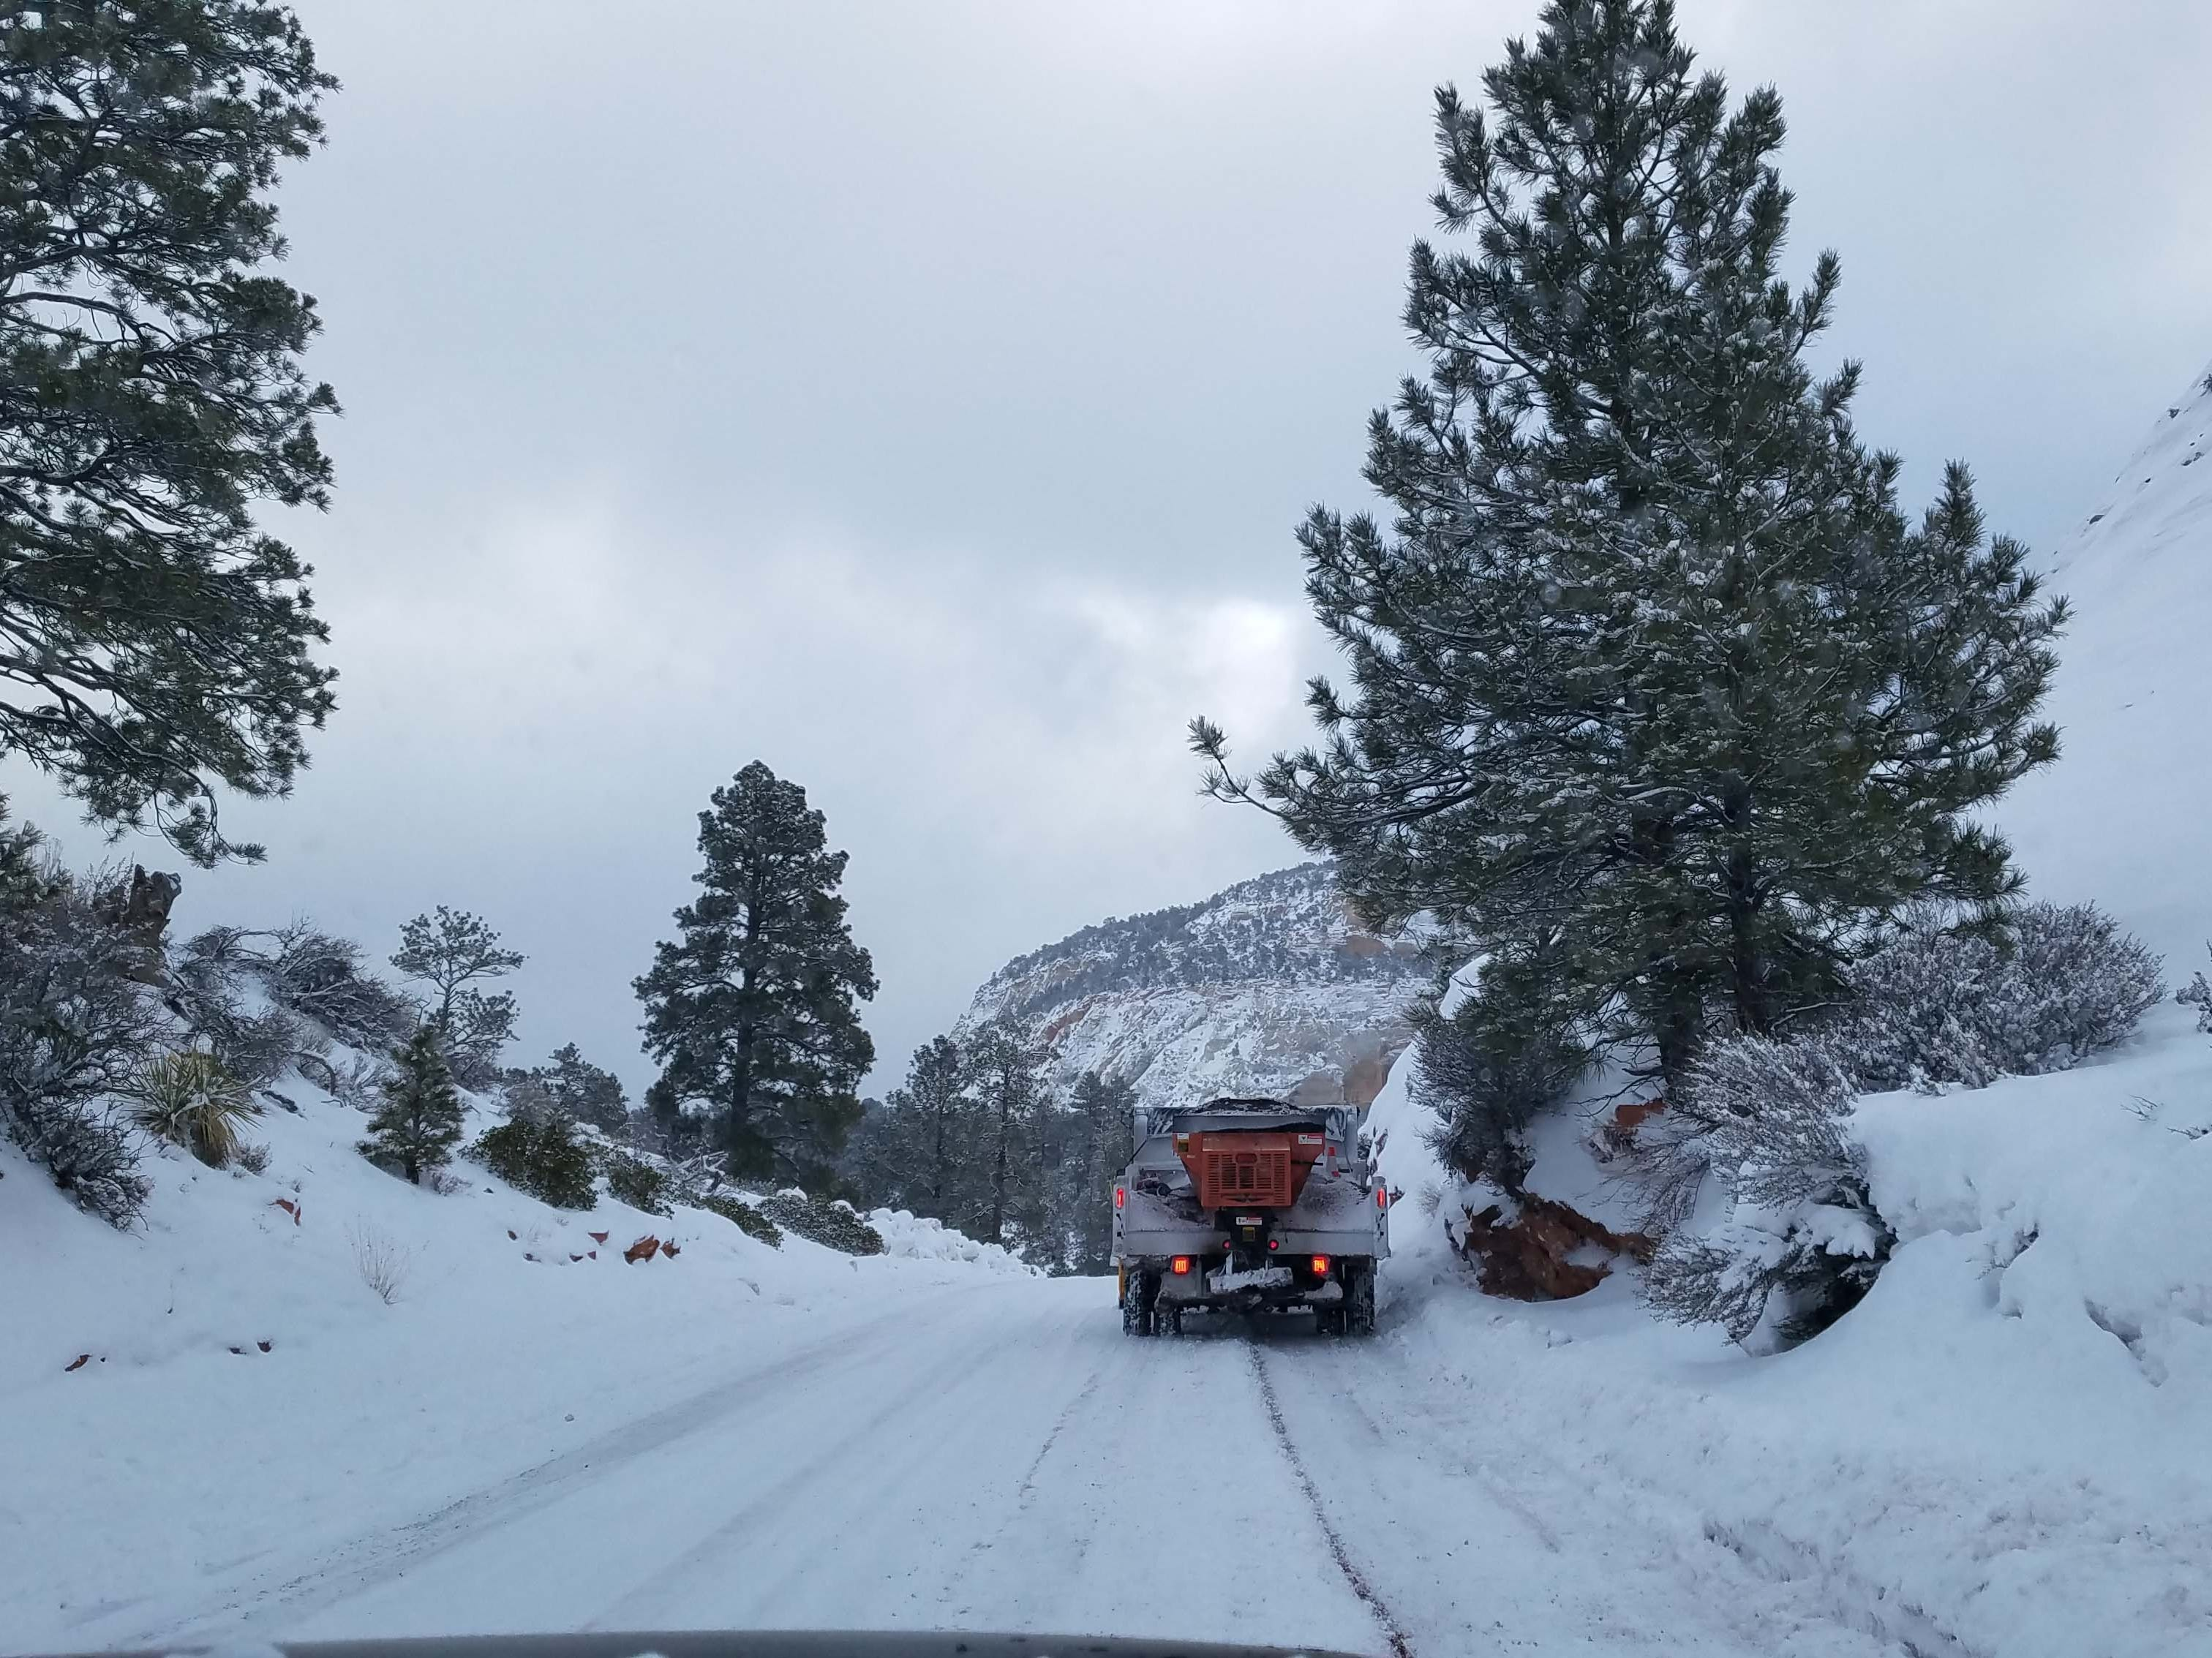 "Where snowplows and Jeeps go. Detroit New auto critic Henry Payne asked the snowplow driver if the snowy Zion pass was passable. ""No problem, you've got a Jeep,"" came the reply."